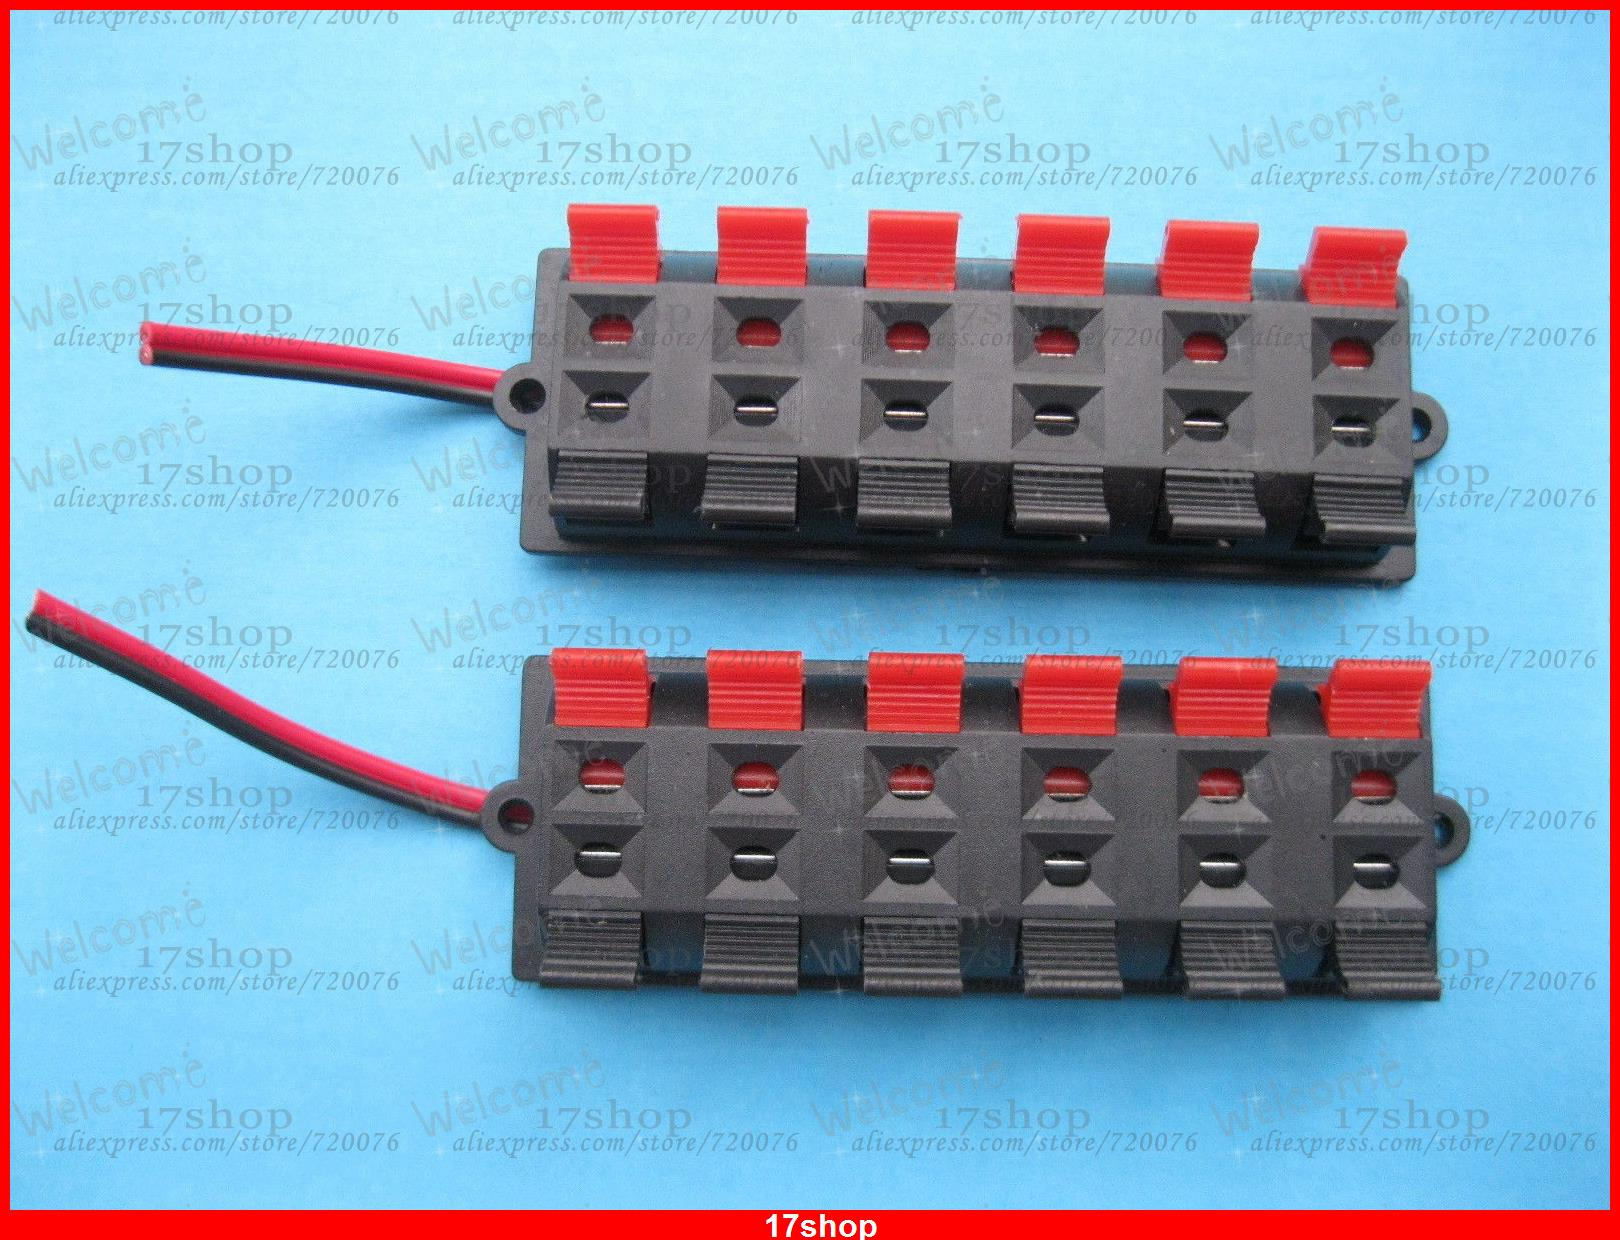 3 pcs 12 Pin Speaker Terminal Board Connector Spring Loaded With Soldered Wire(China (Mainland))